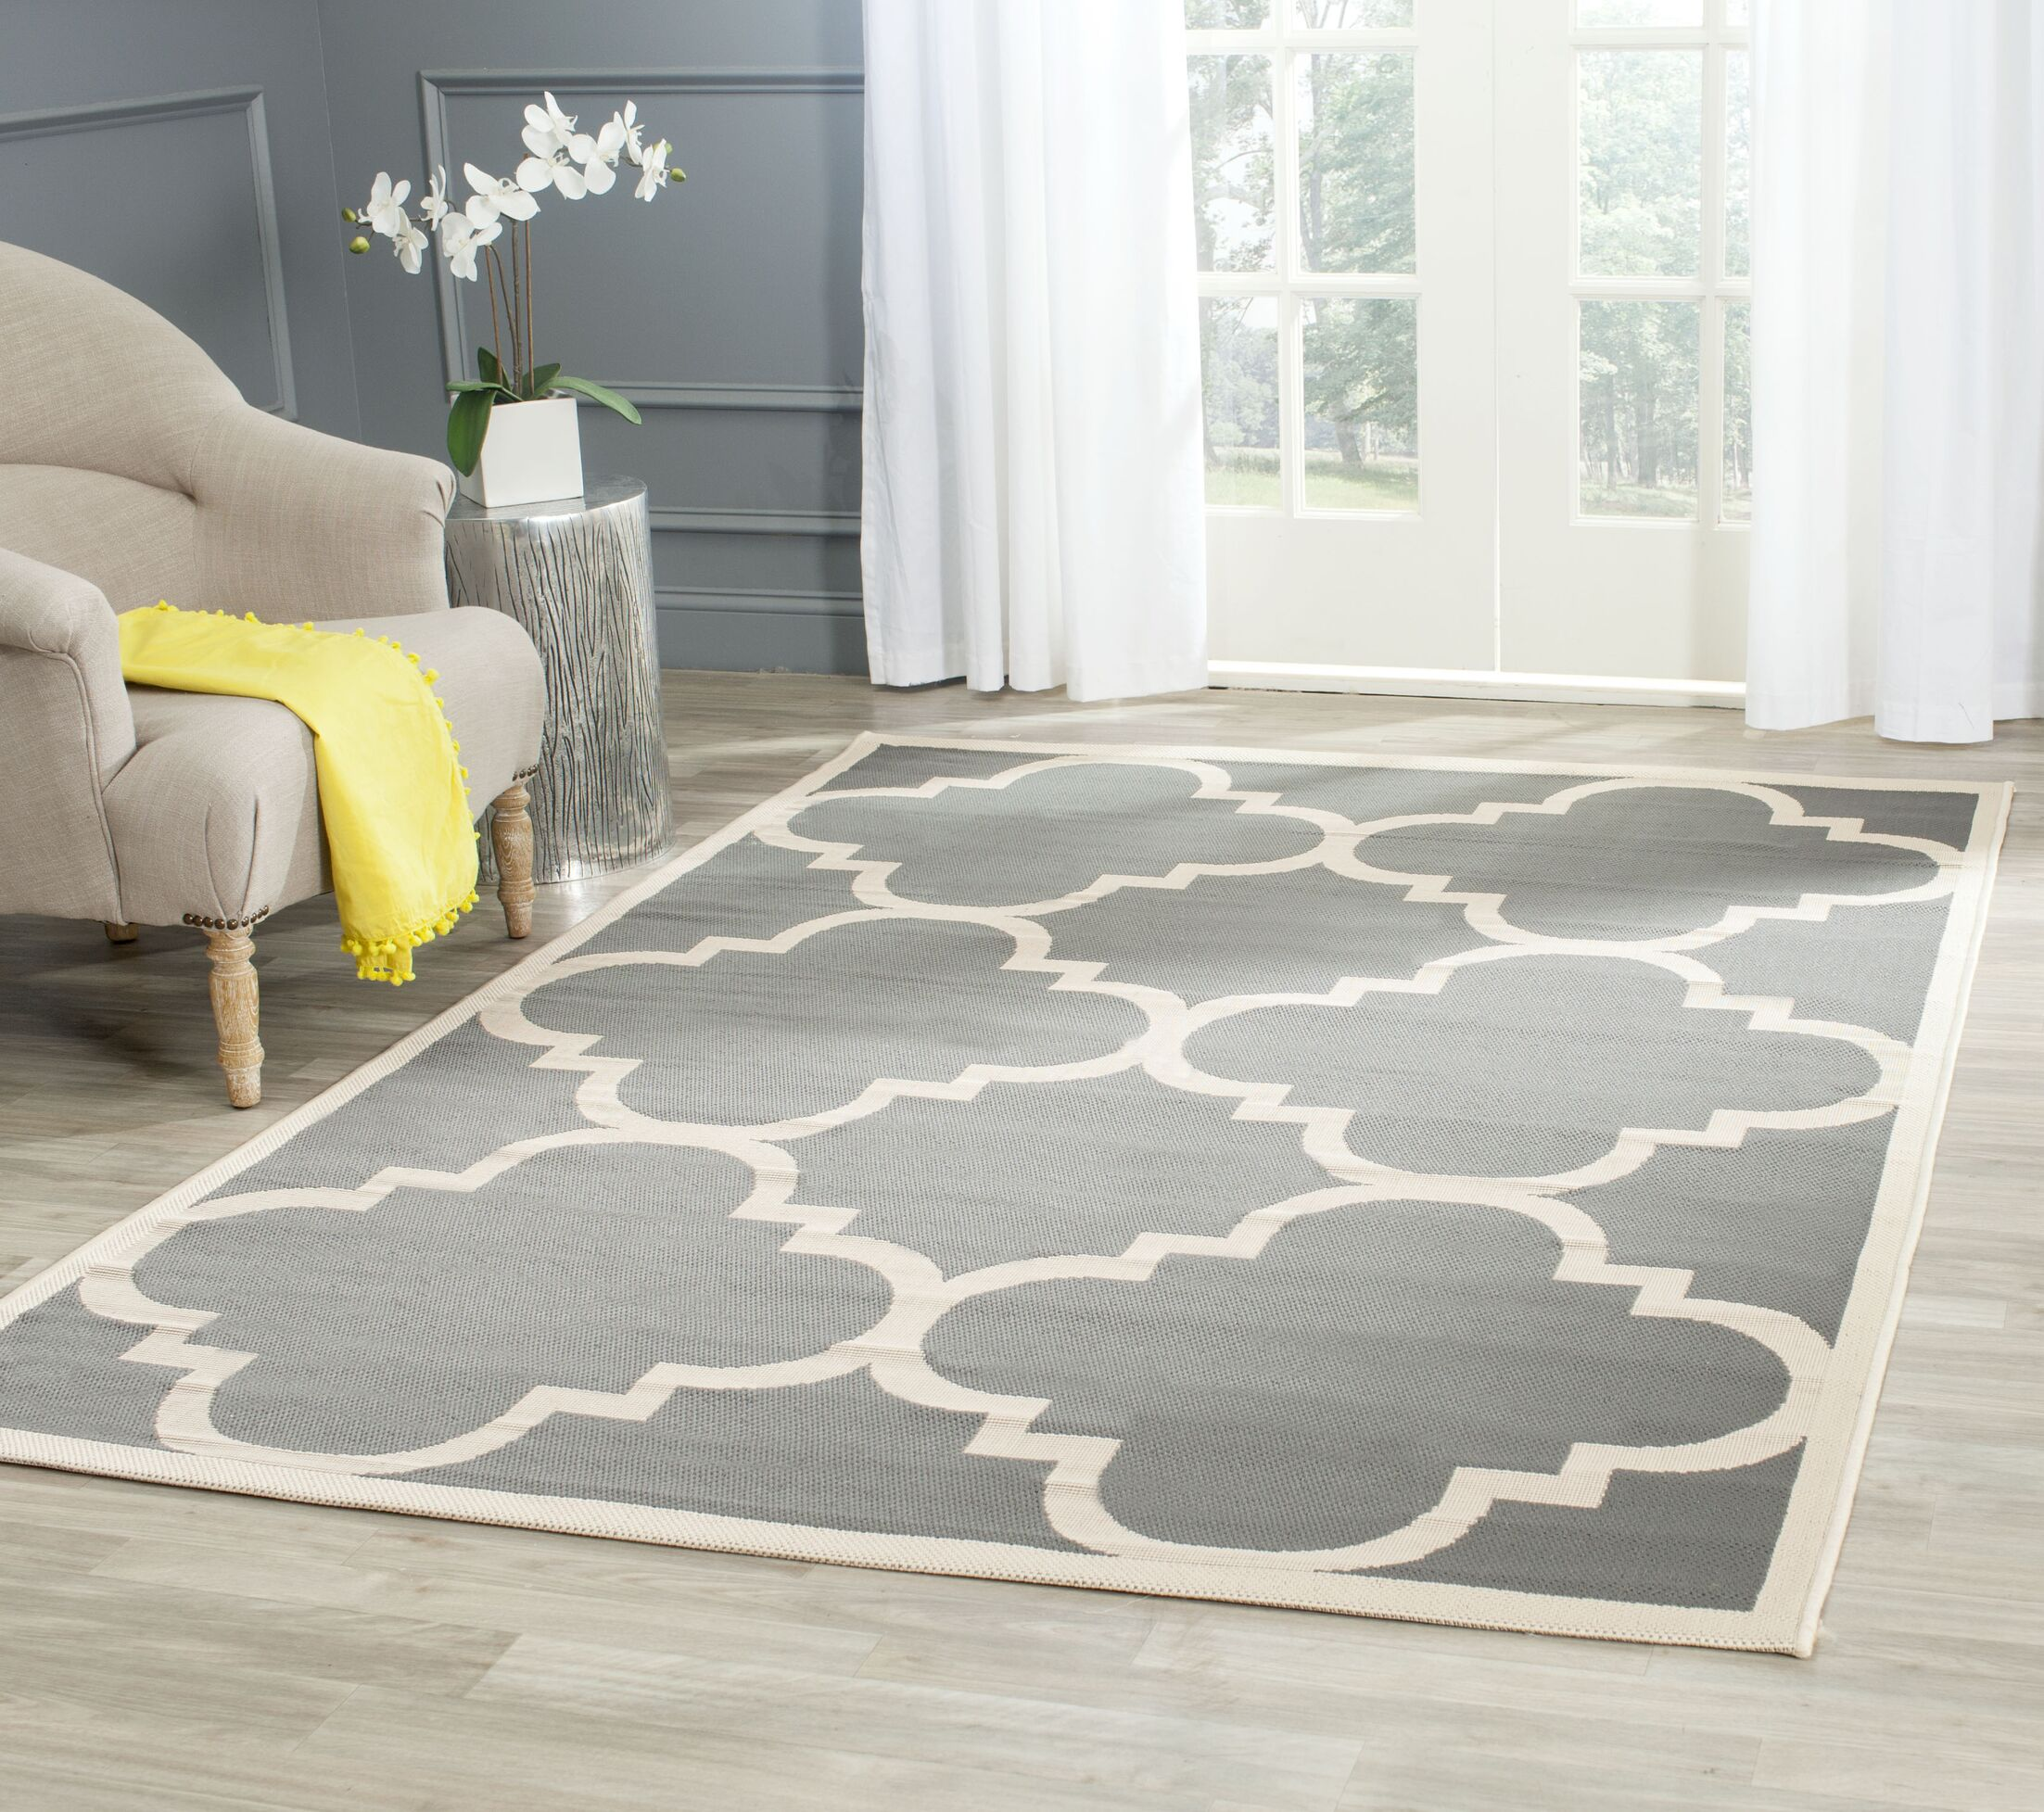 Octavius Gray/Beige Indoor/Outdoor Area Rug Rug Size: Rectangle 8' x 11'2